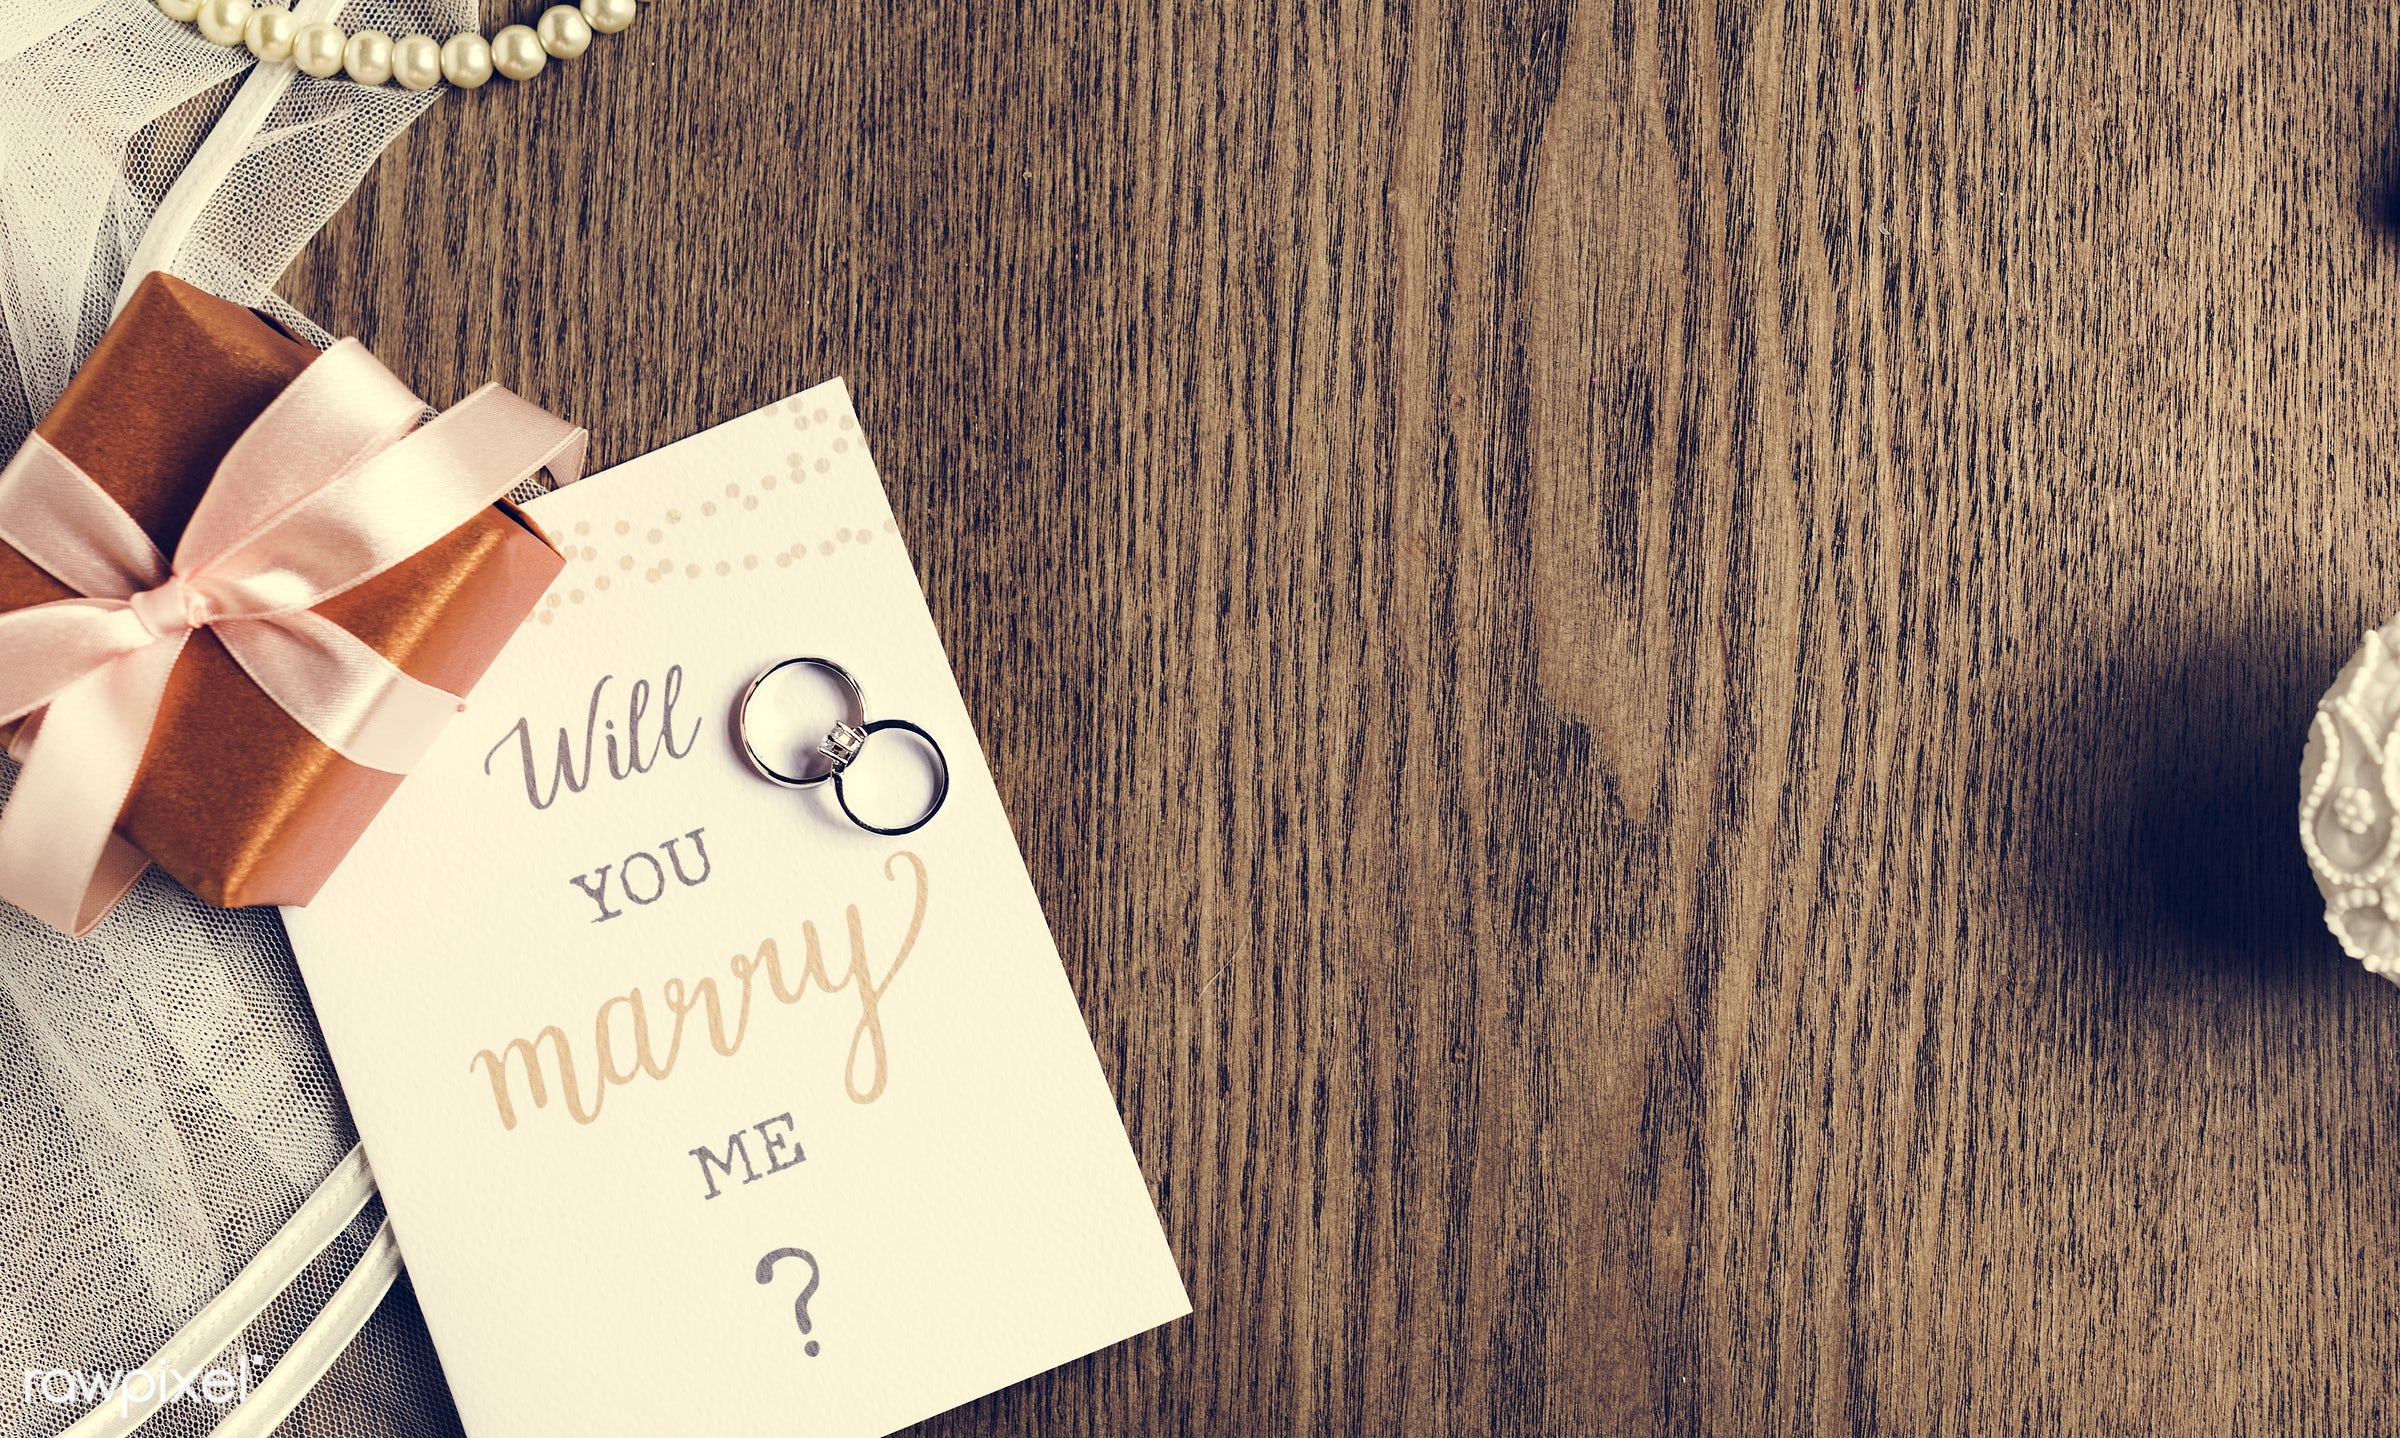 expression, nobody, smitten, together, love, cherish, propose, intimate, lifestyle, card, gown, rings, marry, asking,...